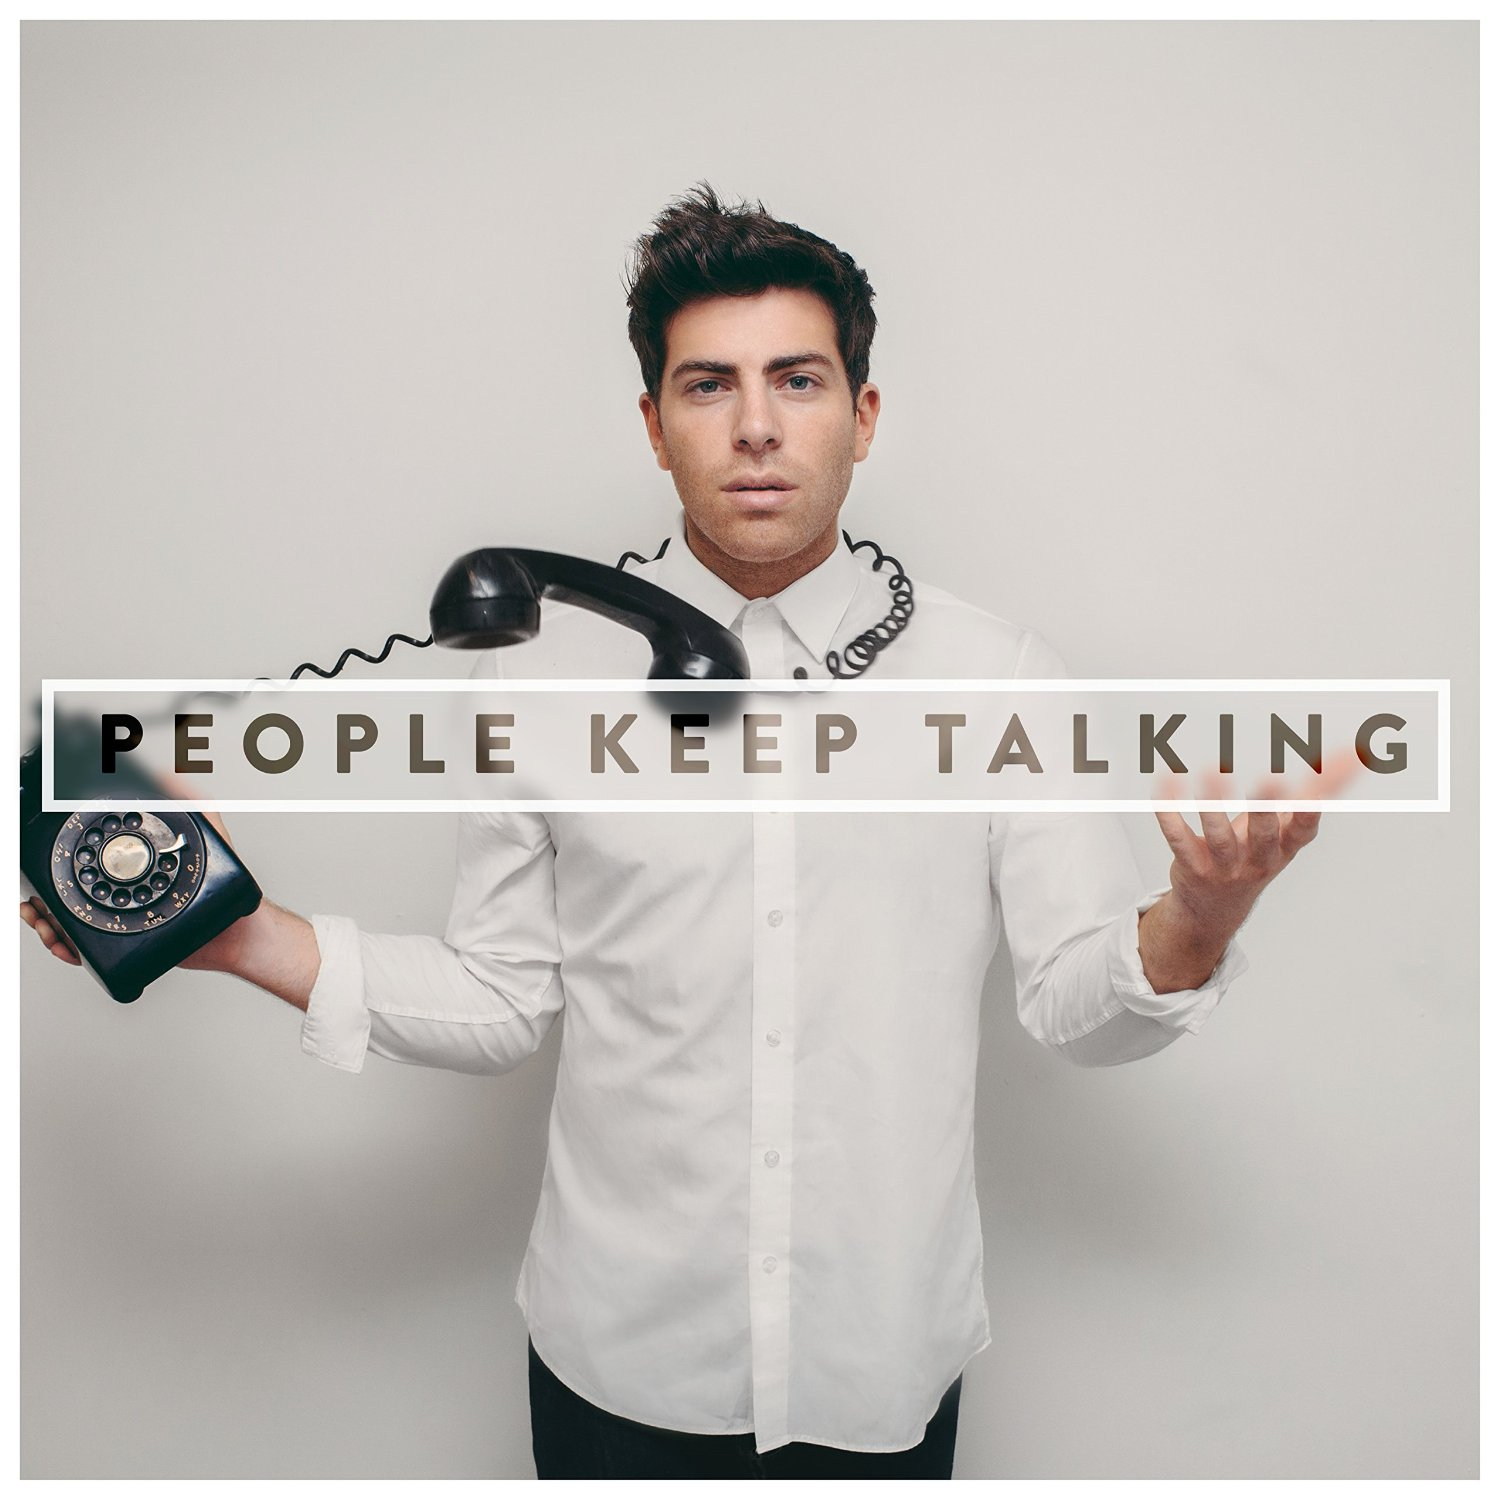 Hoodie Allen Spits Sex, Swag and Pop Culture on 'People Keep Talking'